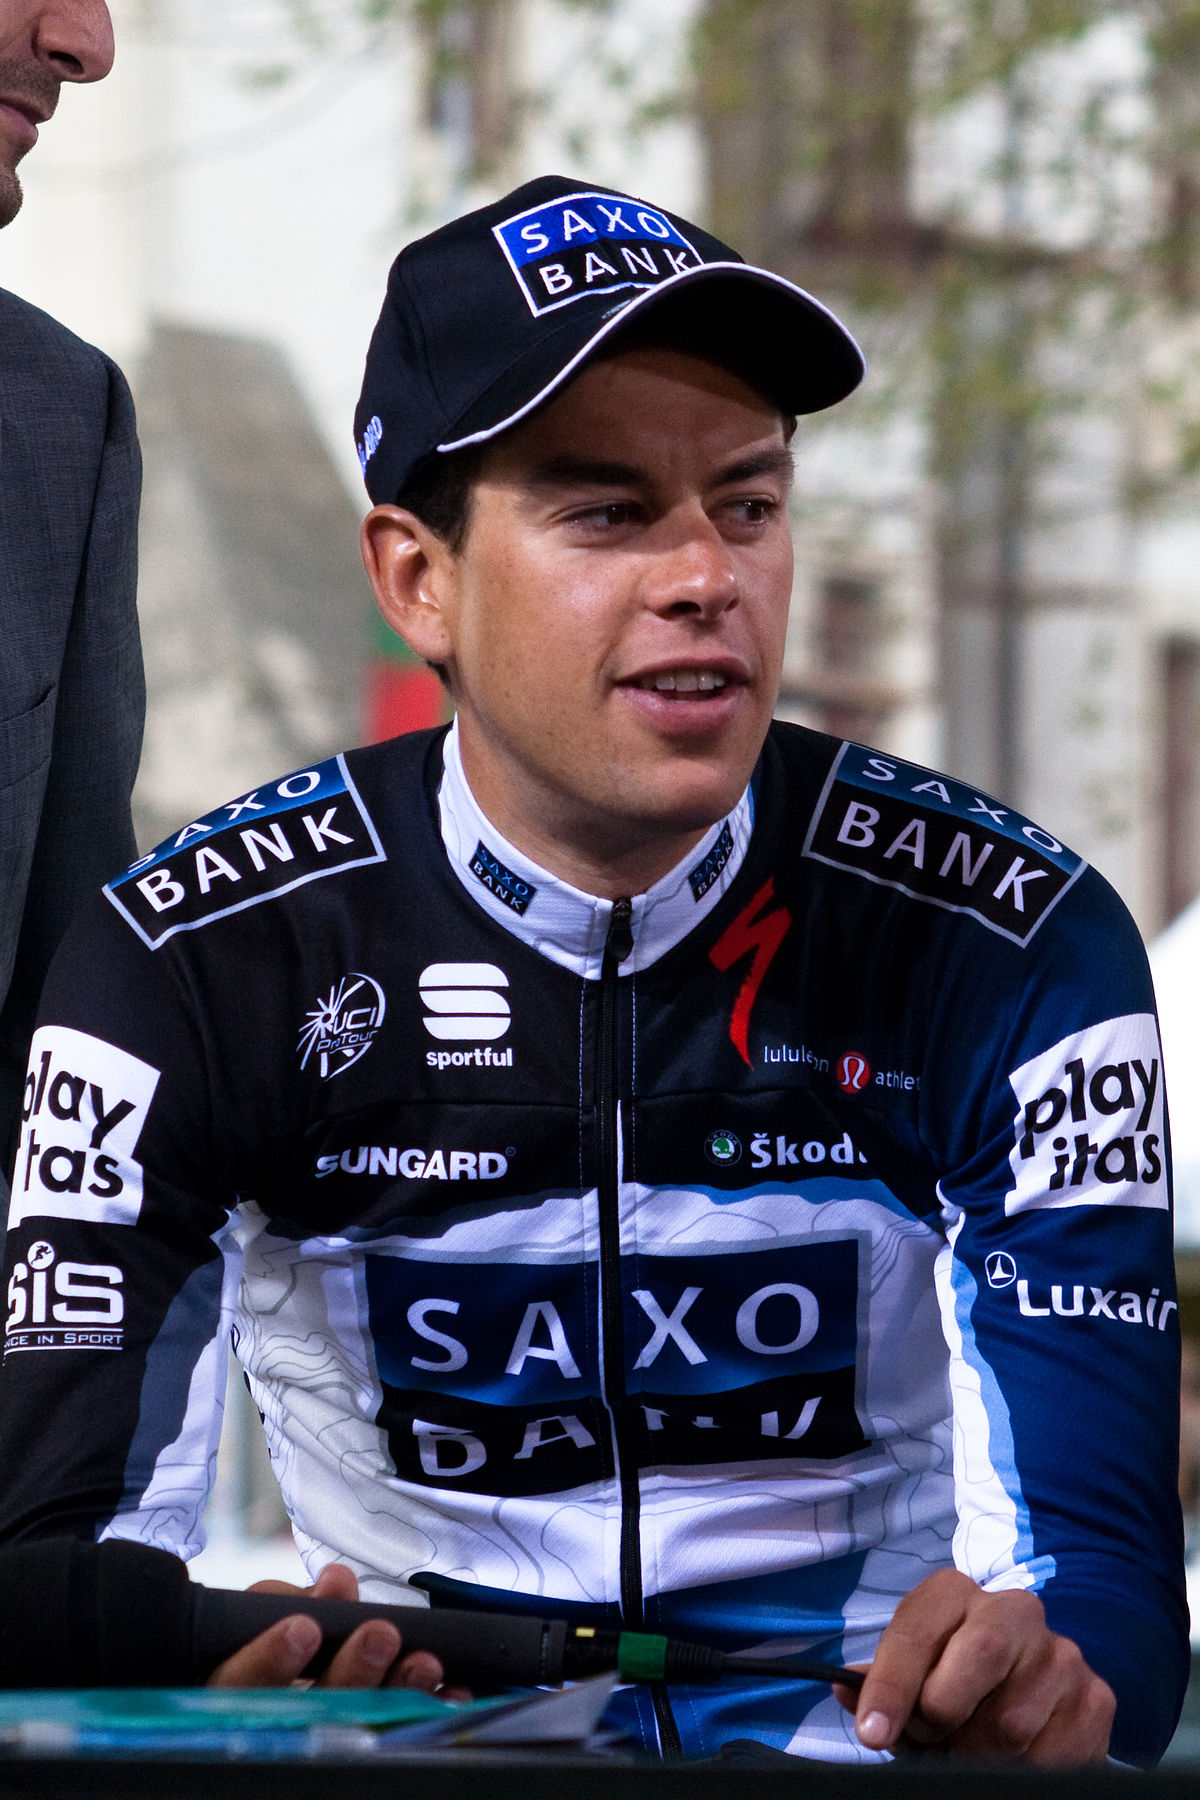 richie porte wikipedia